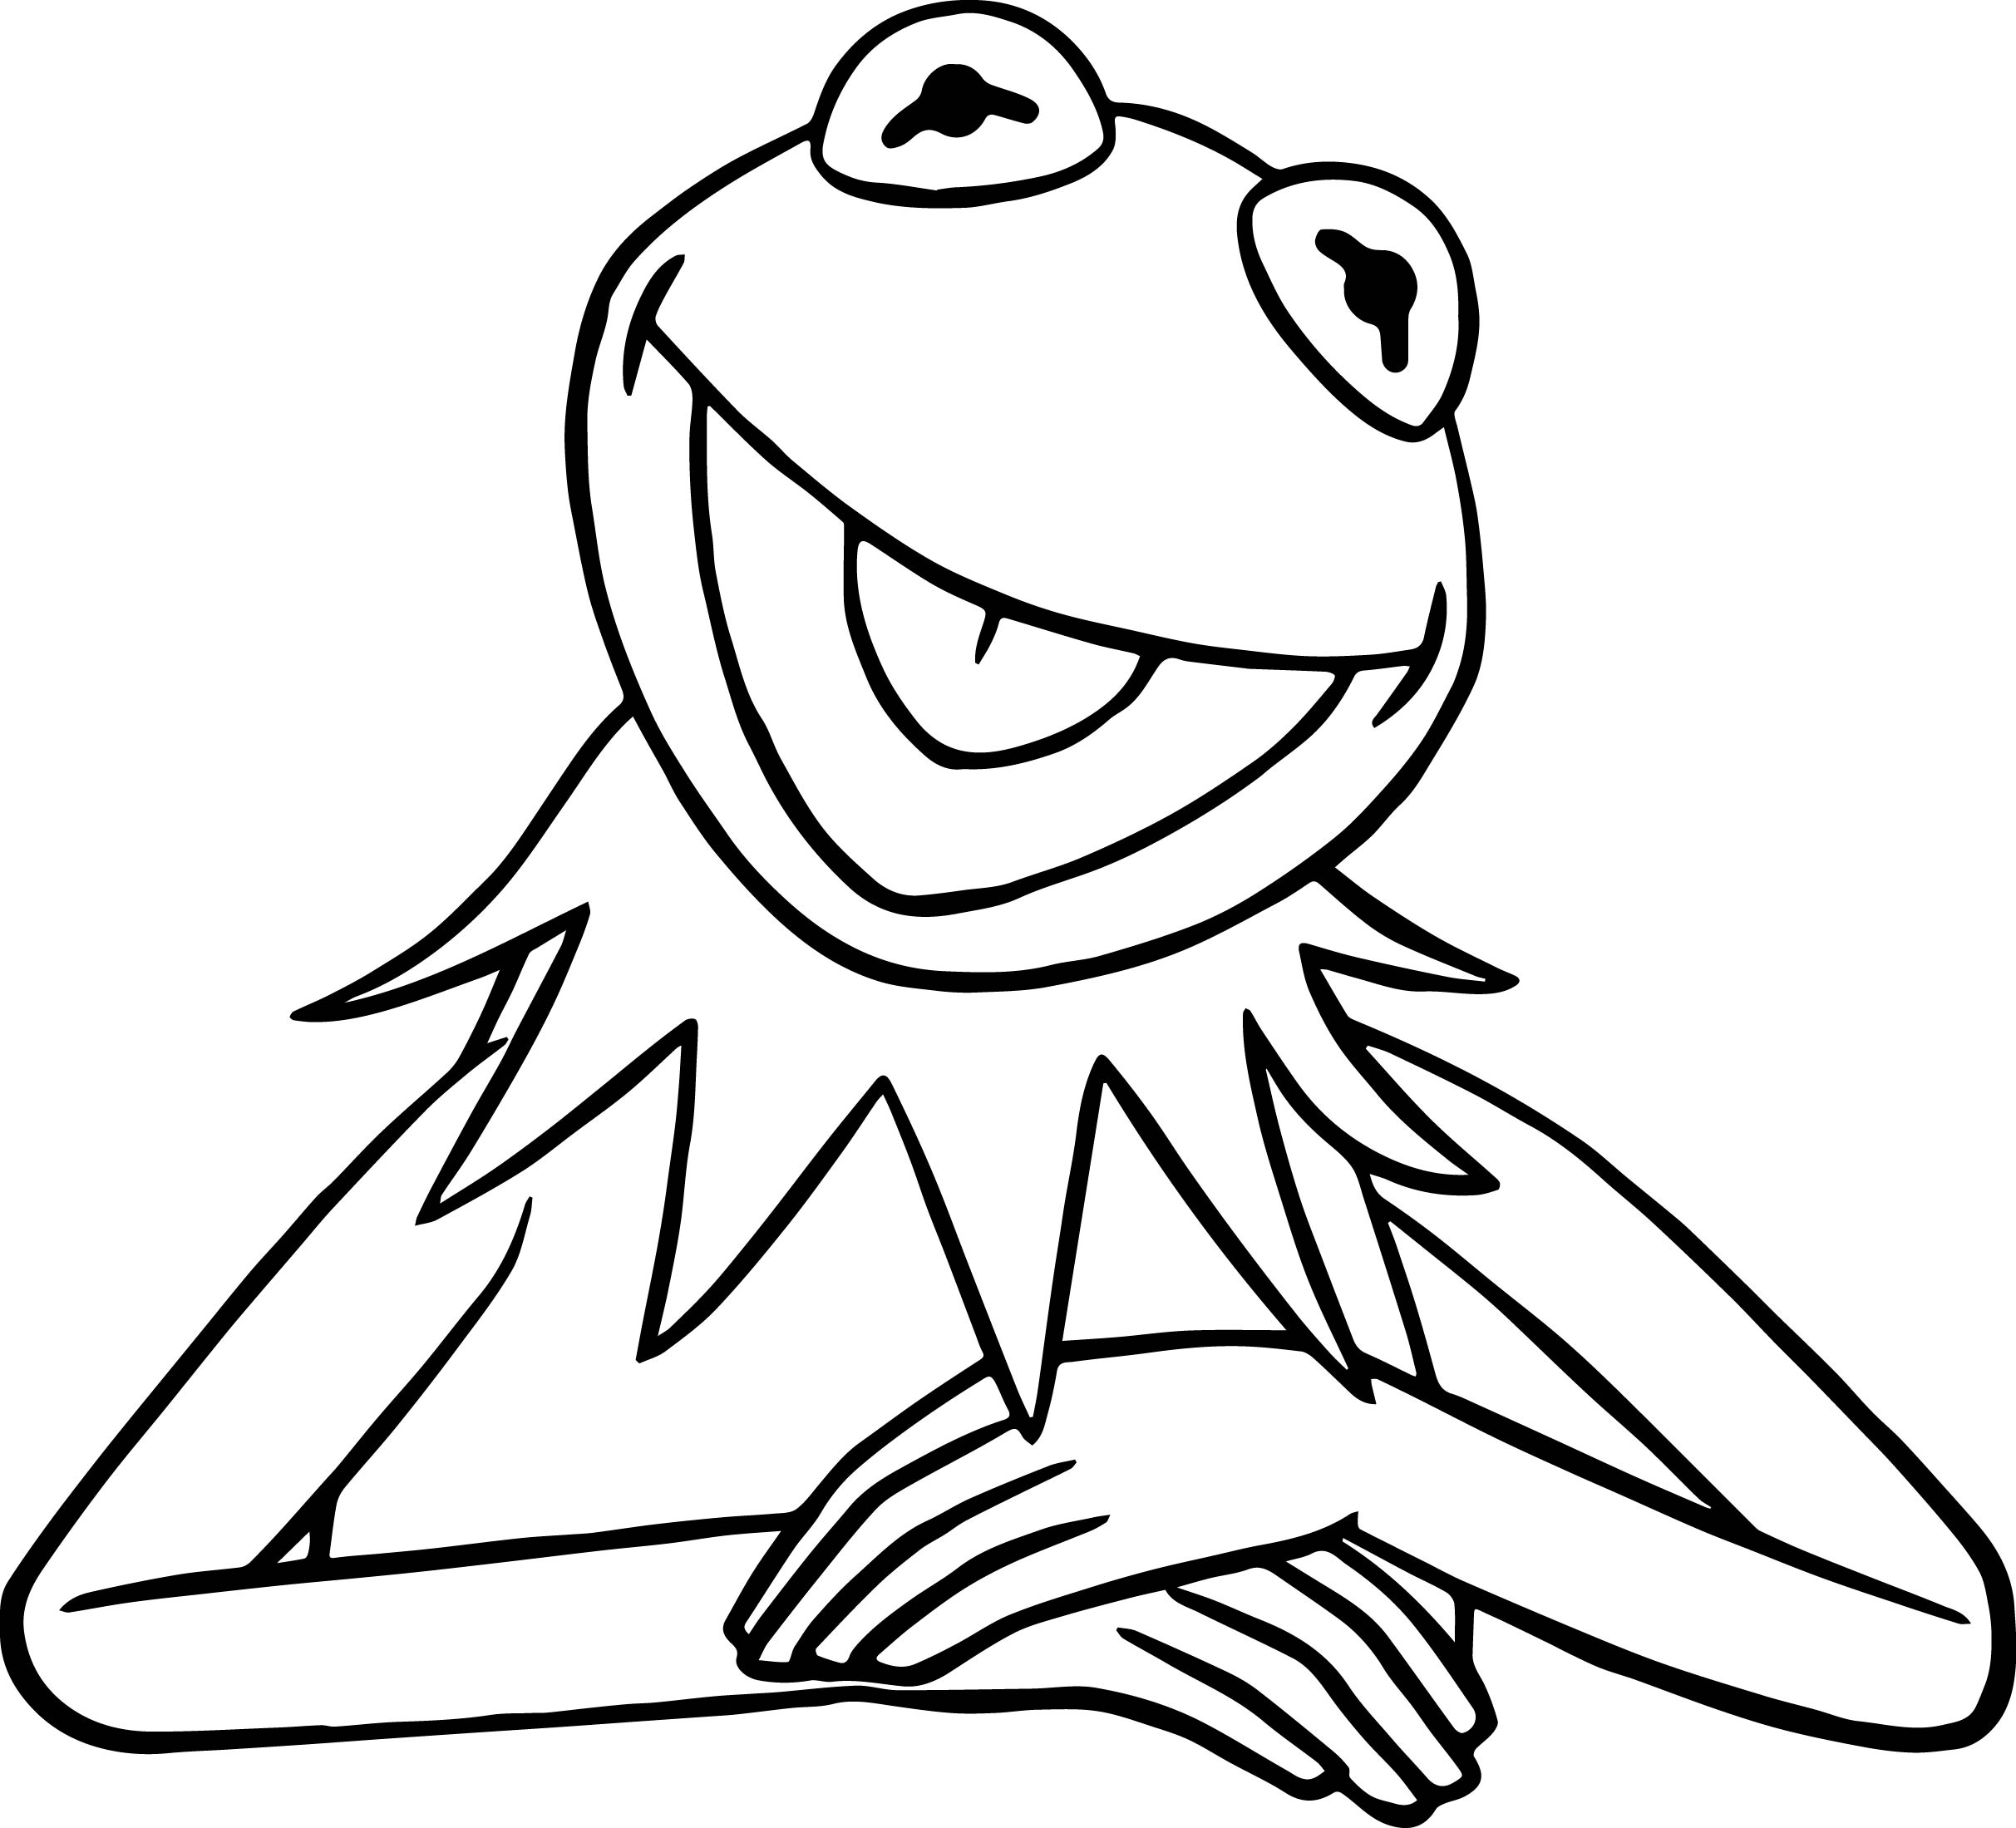 The Muppets Coloring Pages At Getcolorings